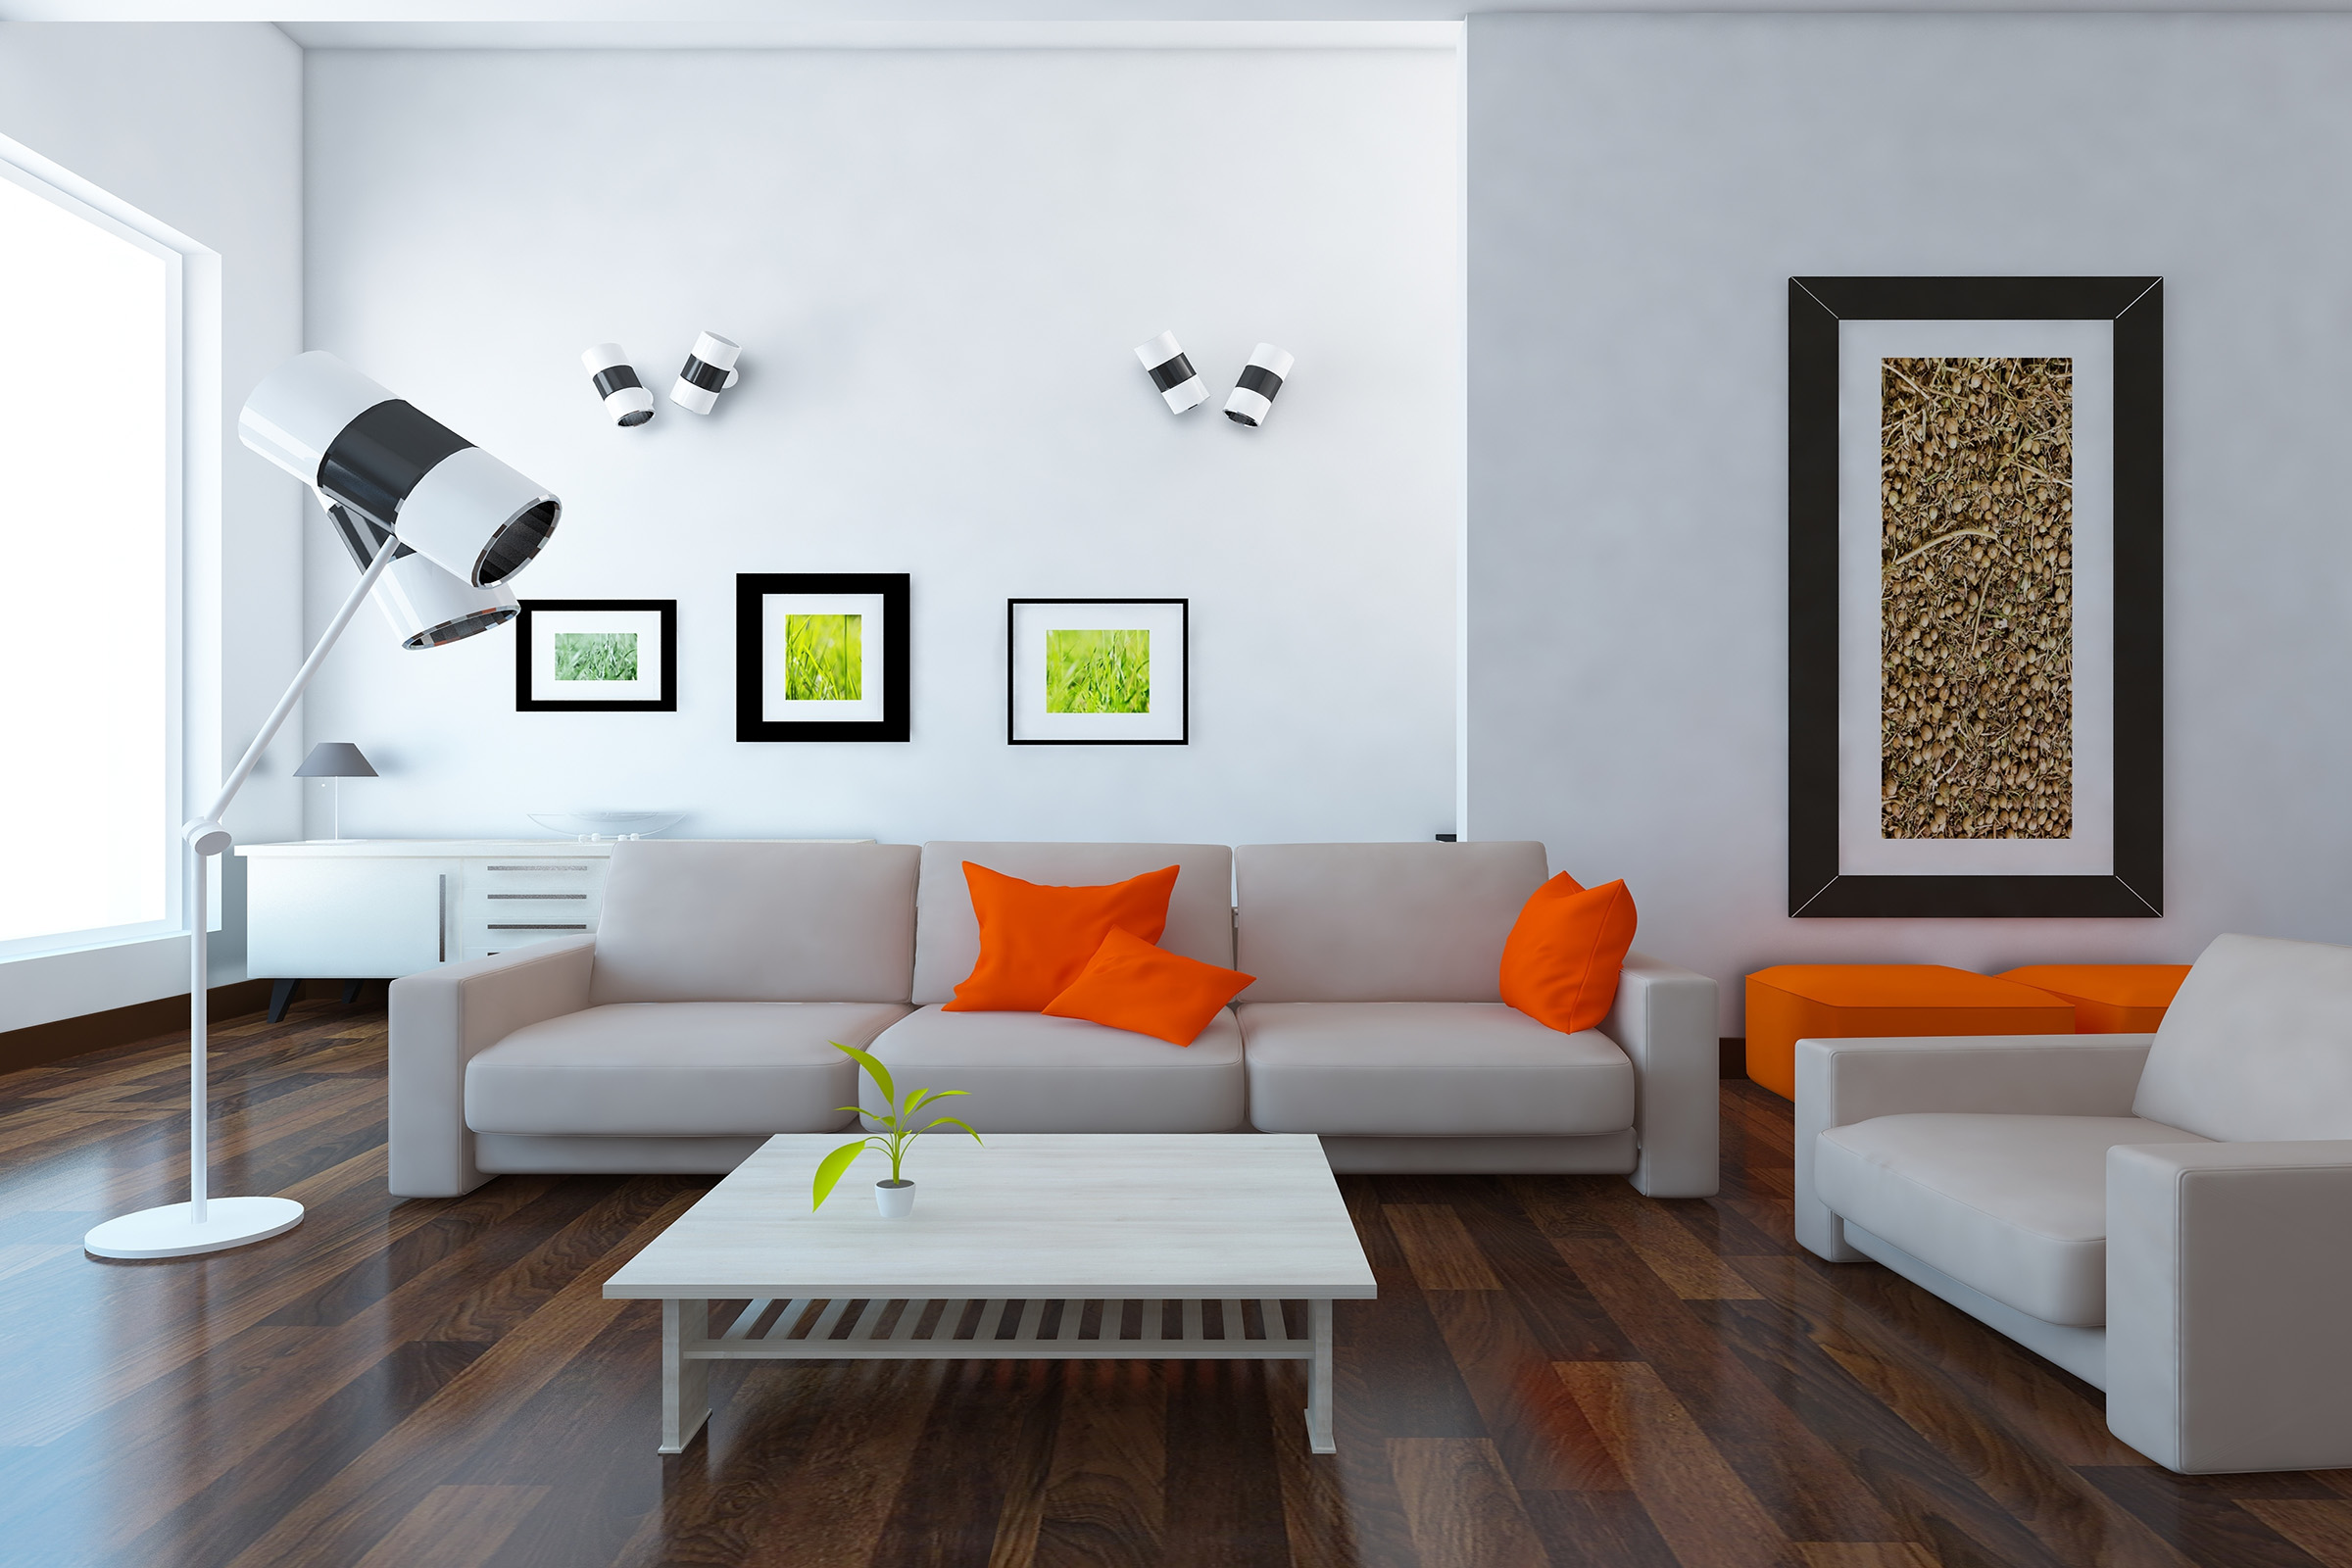 livingroom-white-room-orange-pillows